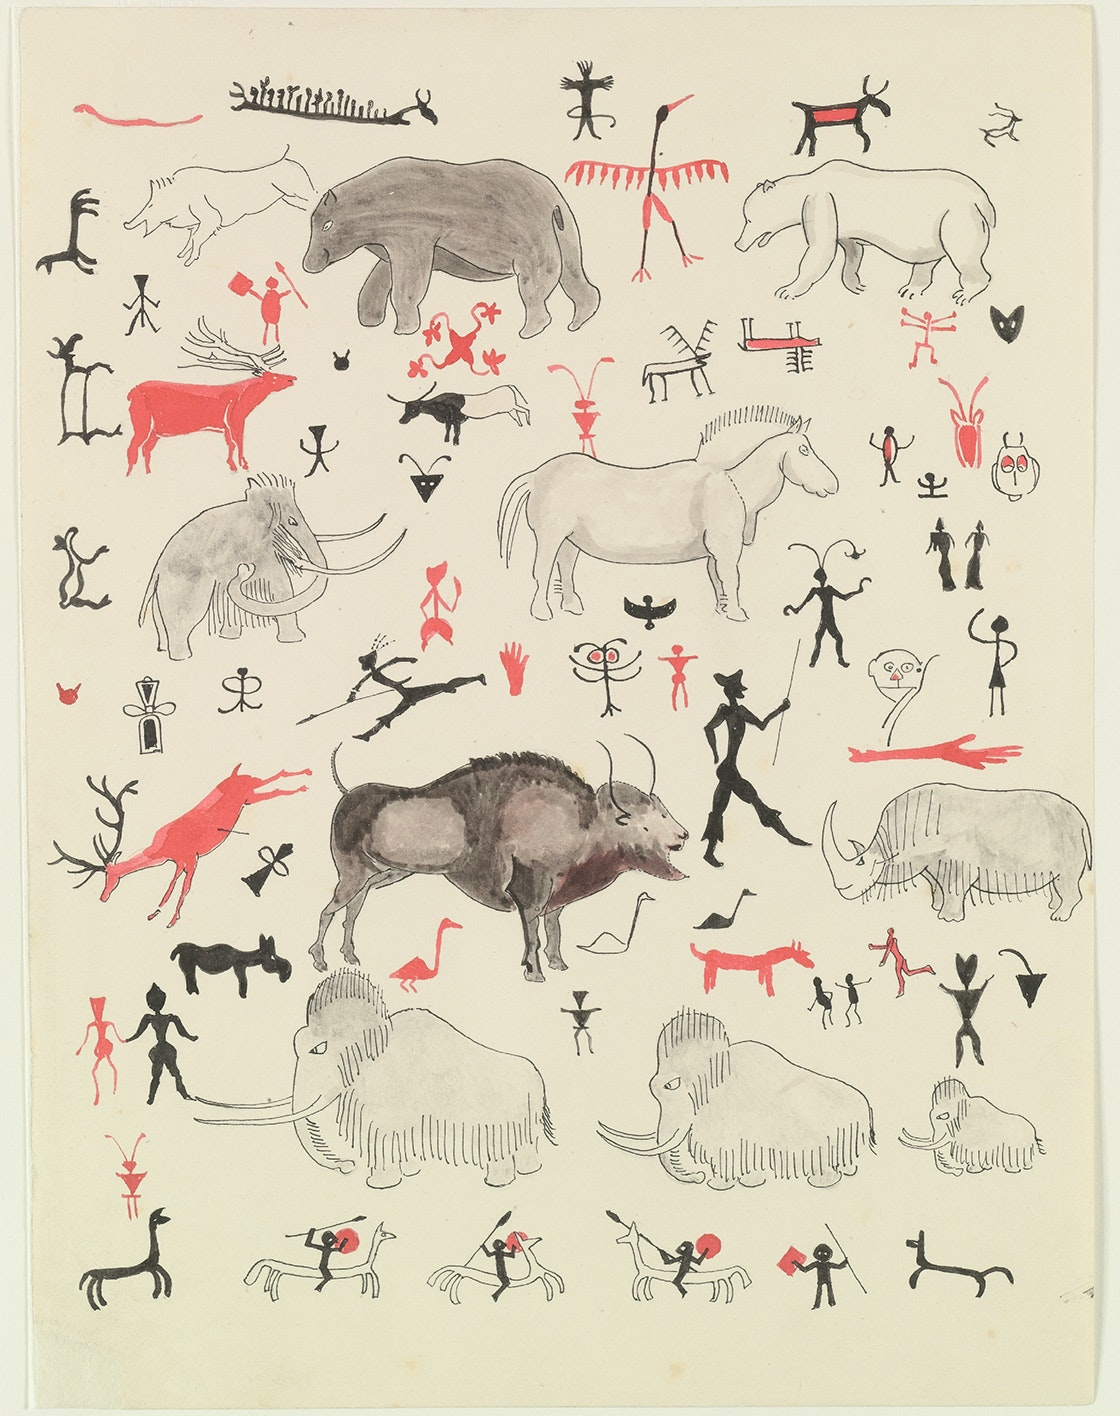 Cave drawings, 1932: 'Polar Bear himself was astonished when I brought light; for the most remarkable thing is that the walls of these caves are all covered with pictures, cut into the rock or painted on in red and brown and black. Some of them are very good (mostly of animals), and some are queer and some bad; and there are many strange marks, signs and scribbles, some of which have a nasty look.' © The Tolkien Estate Ltd, 1976